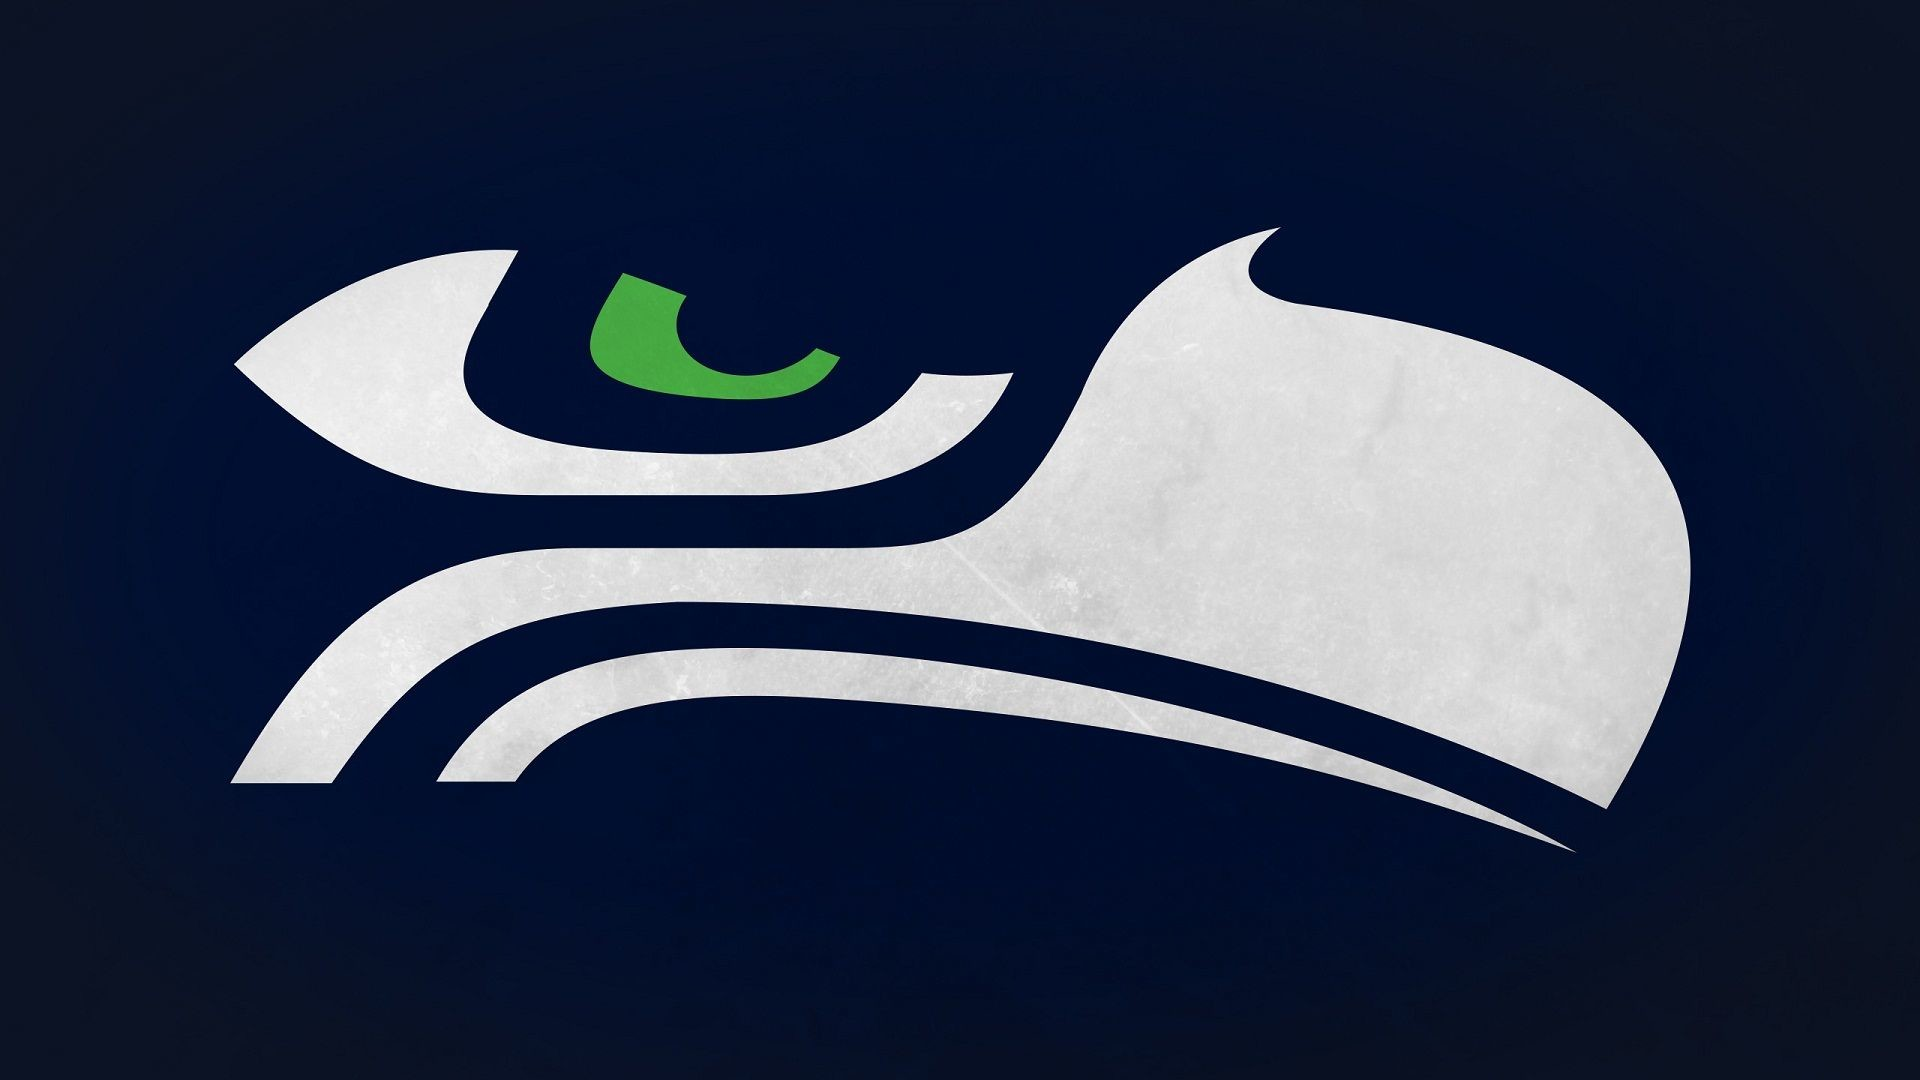 1920x1080 Seahawk Wallpapers - Wallpaper Cave